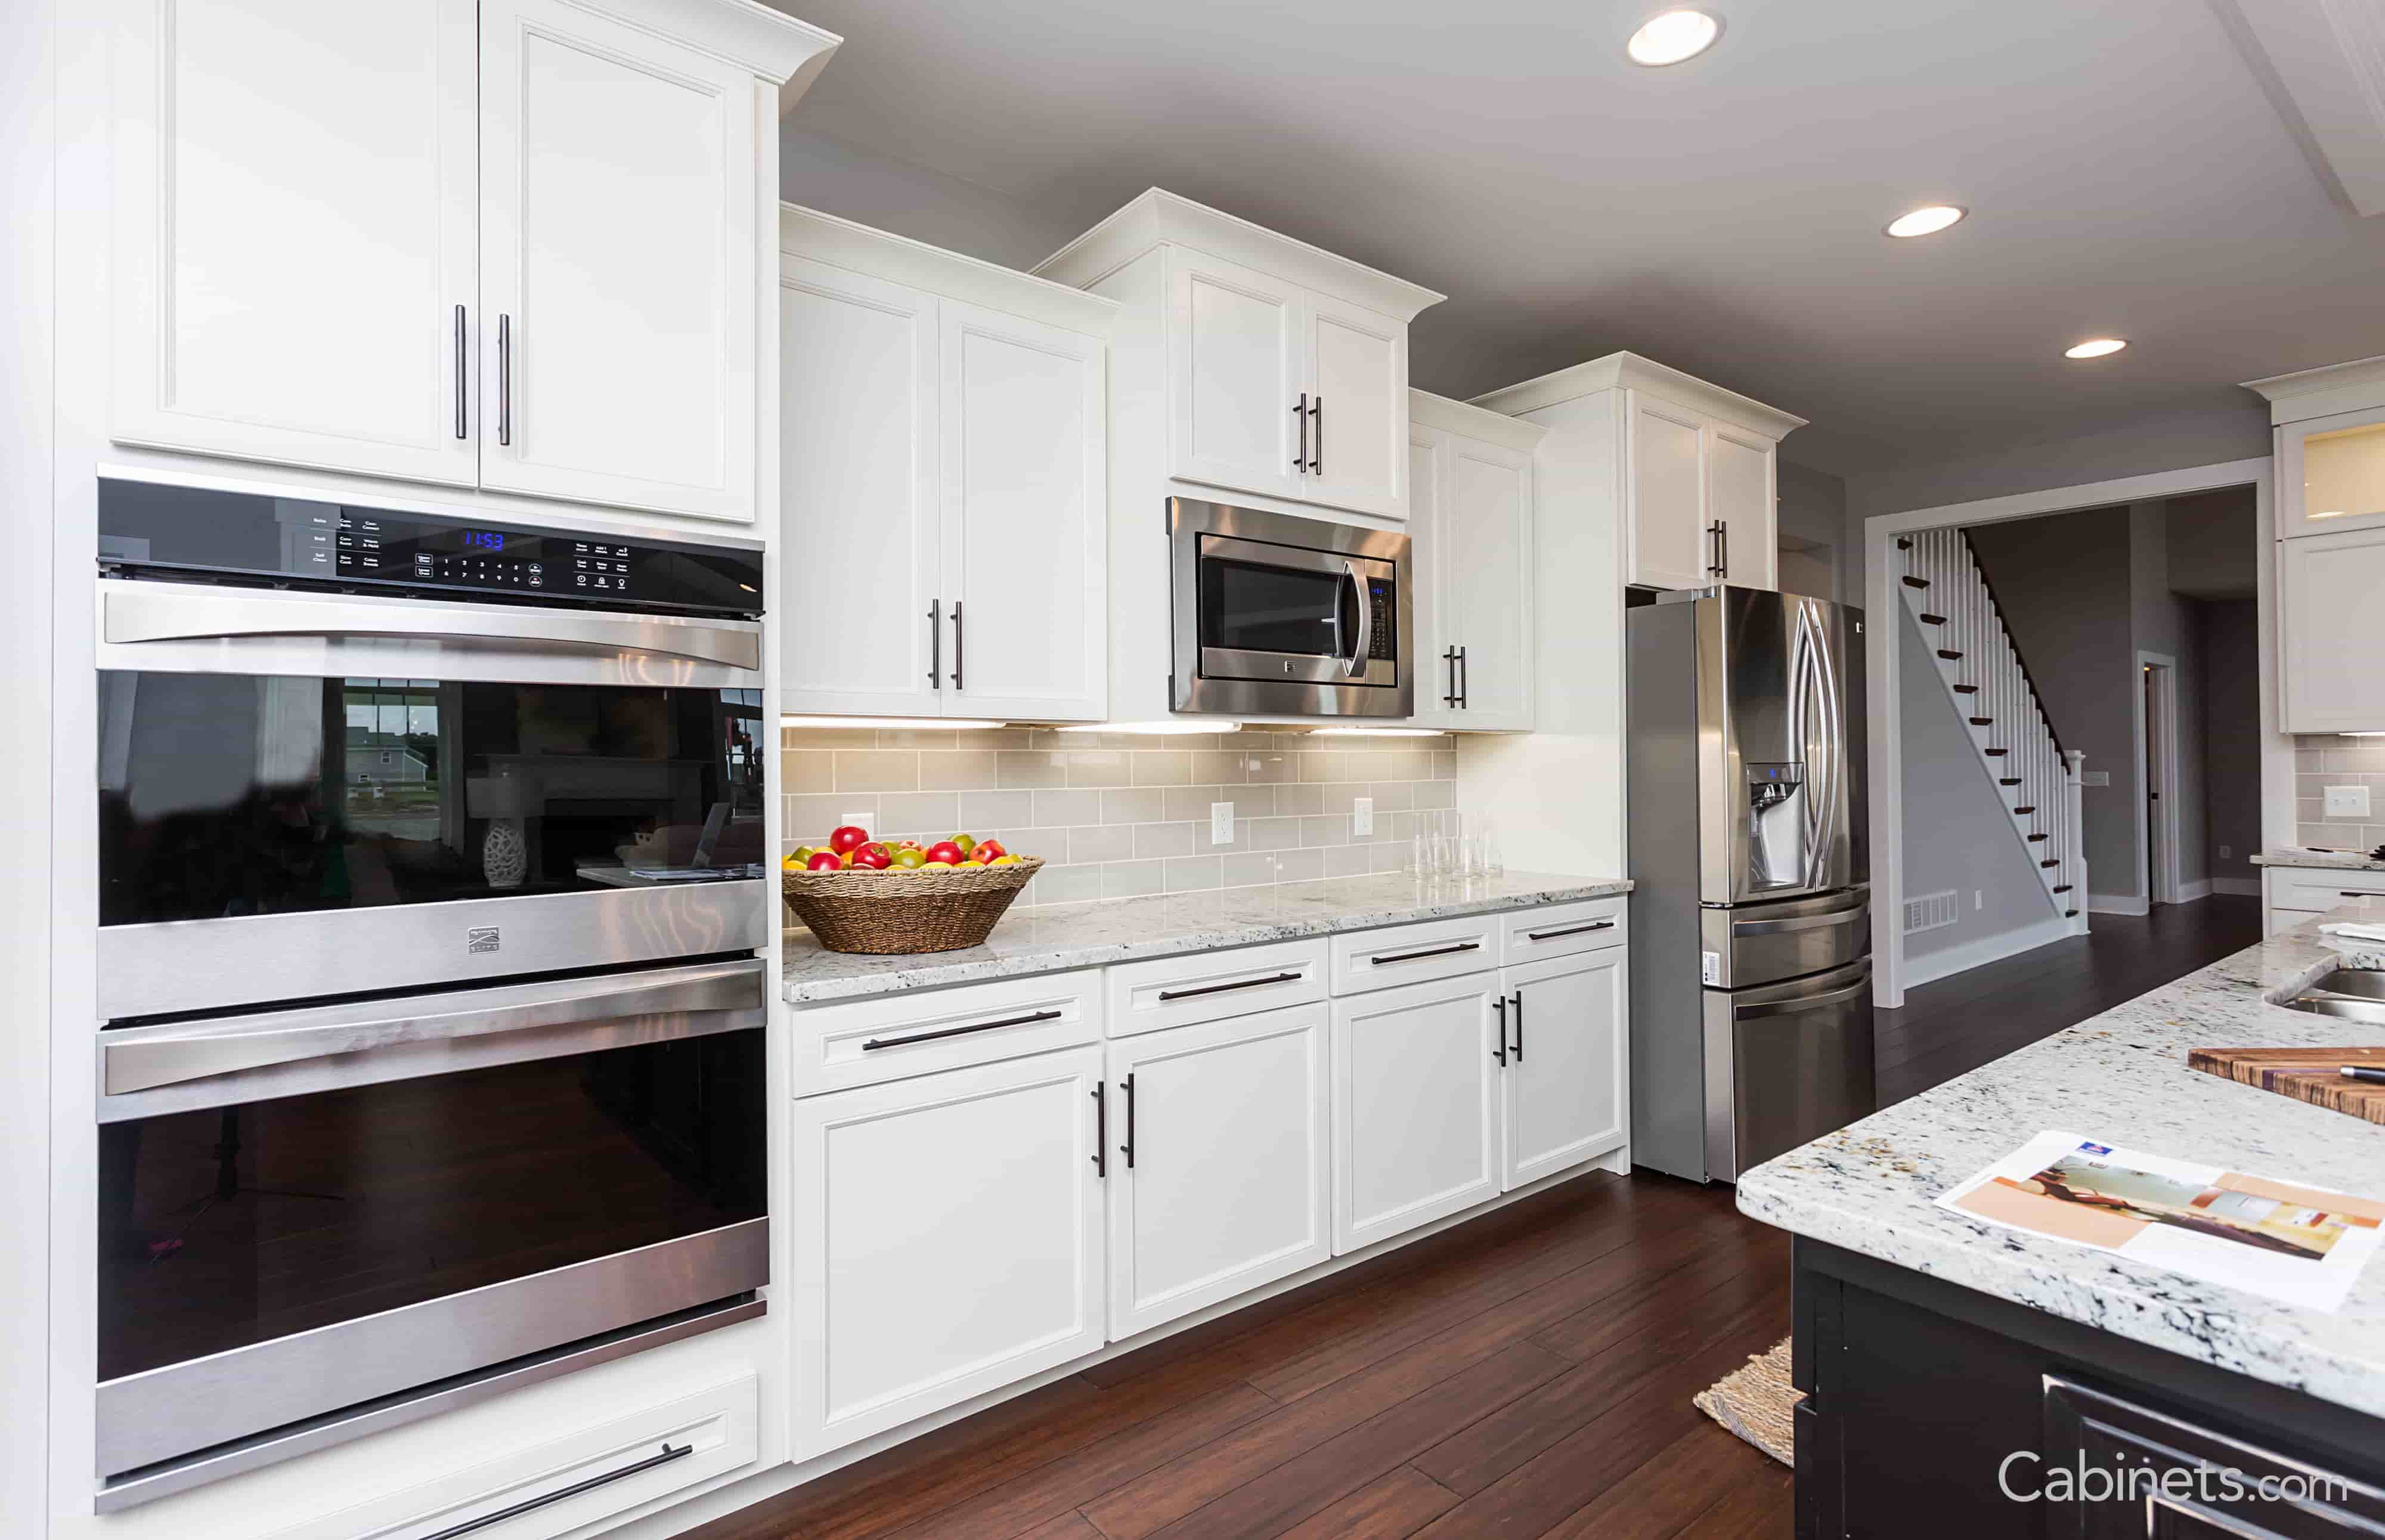 Working With A Built In Appliance Cabinets Com